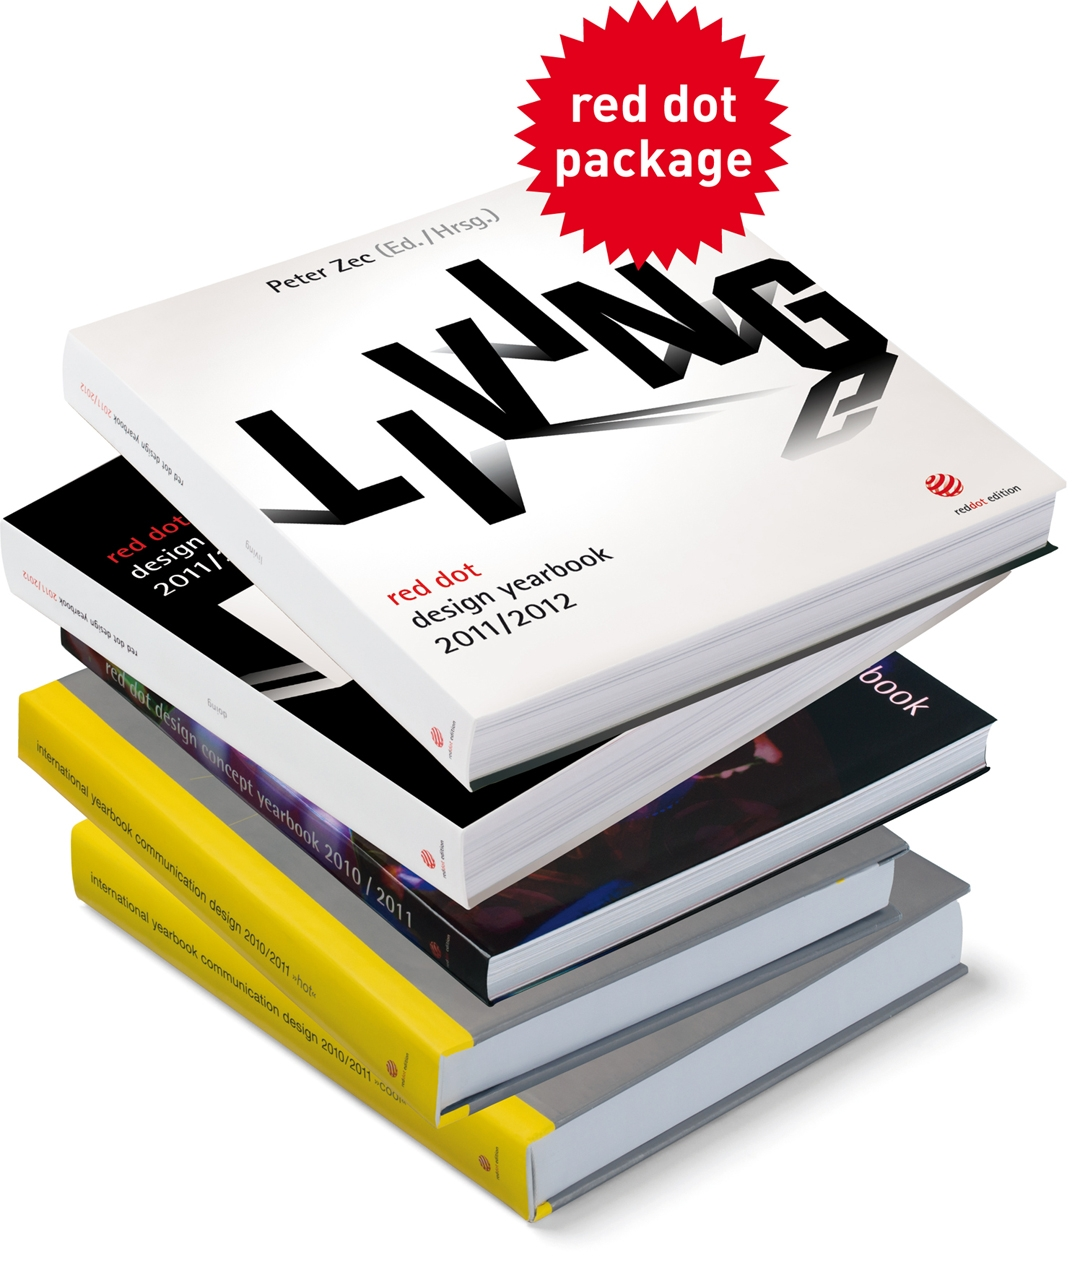 RED DOT PACKAGE PACKAGE SPRING 2011 (English and German Edition) PDF